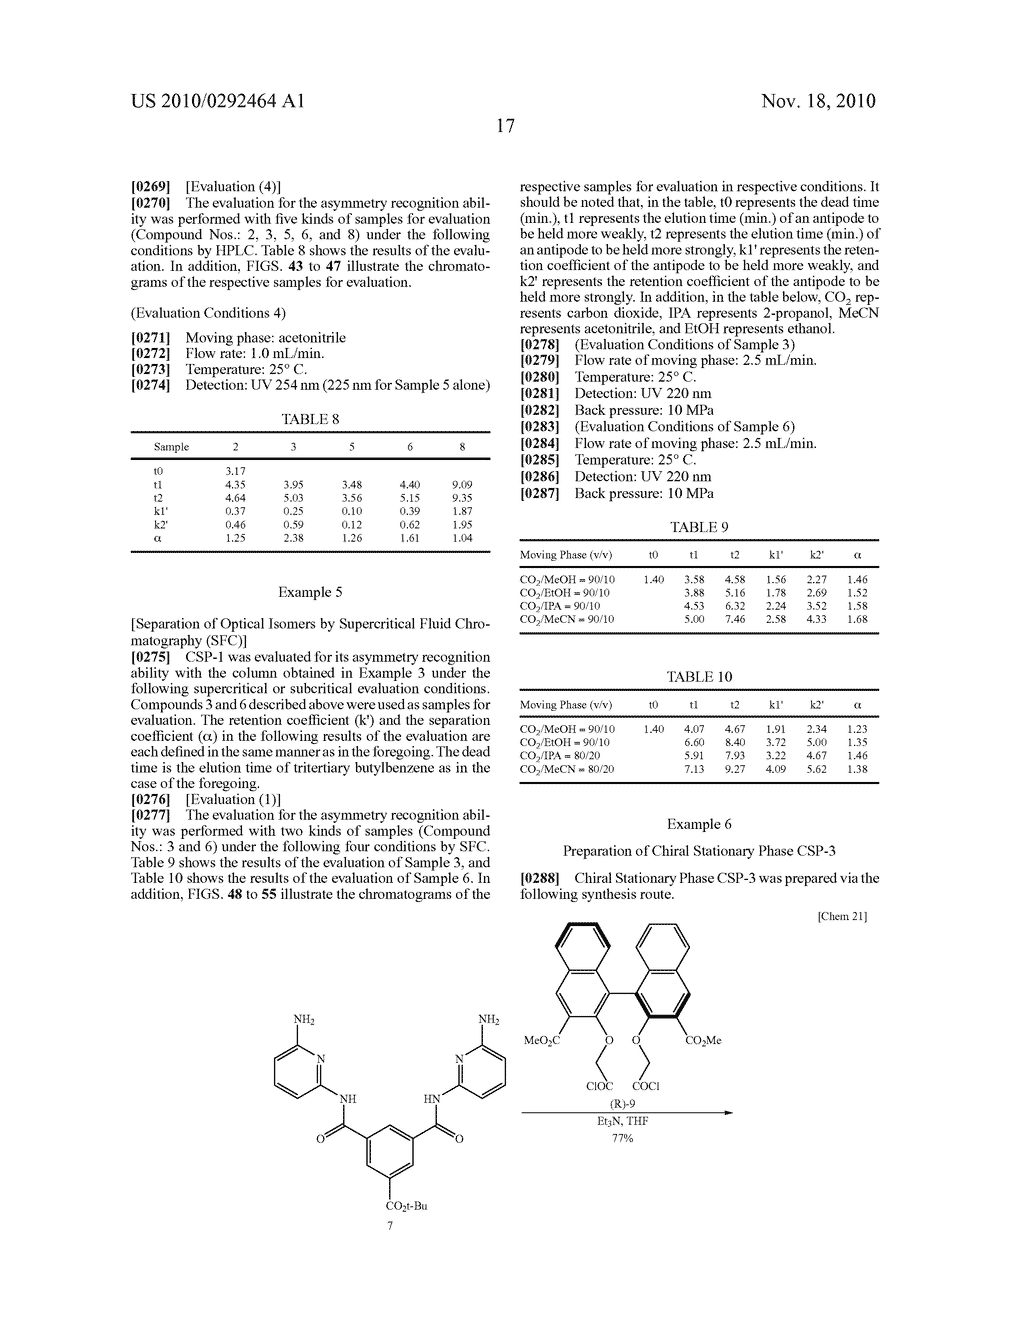 OPTICAL-ISOMER SEPARATING AGENT FOR CHROMATOGRAPHY AND PROCESS FOR PRODUCING THE SAME - diagram, schematic, and image 61